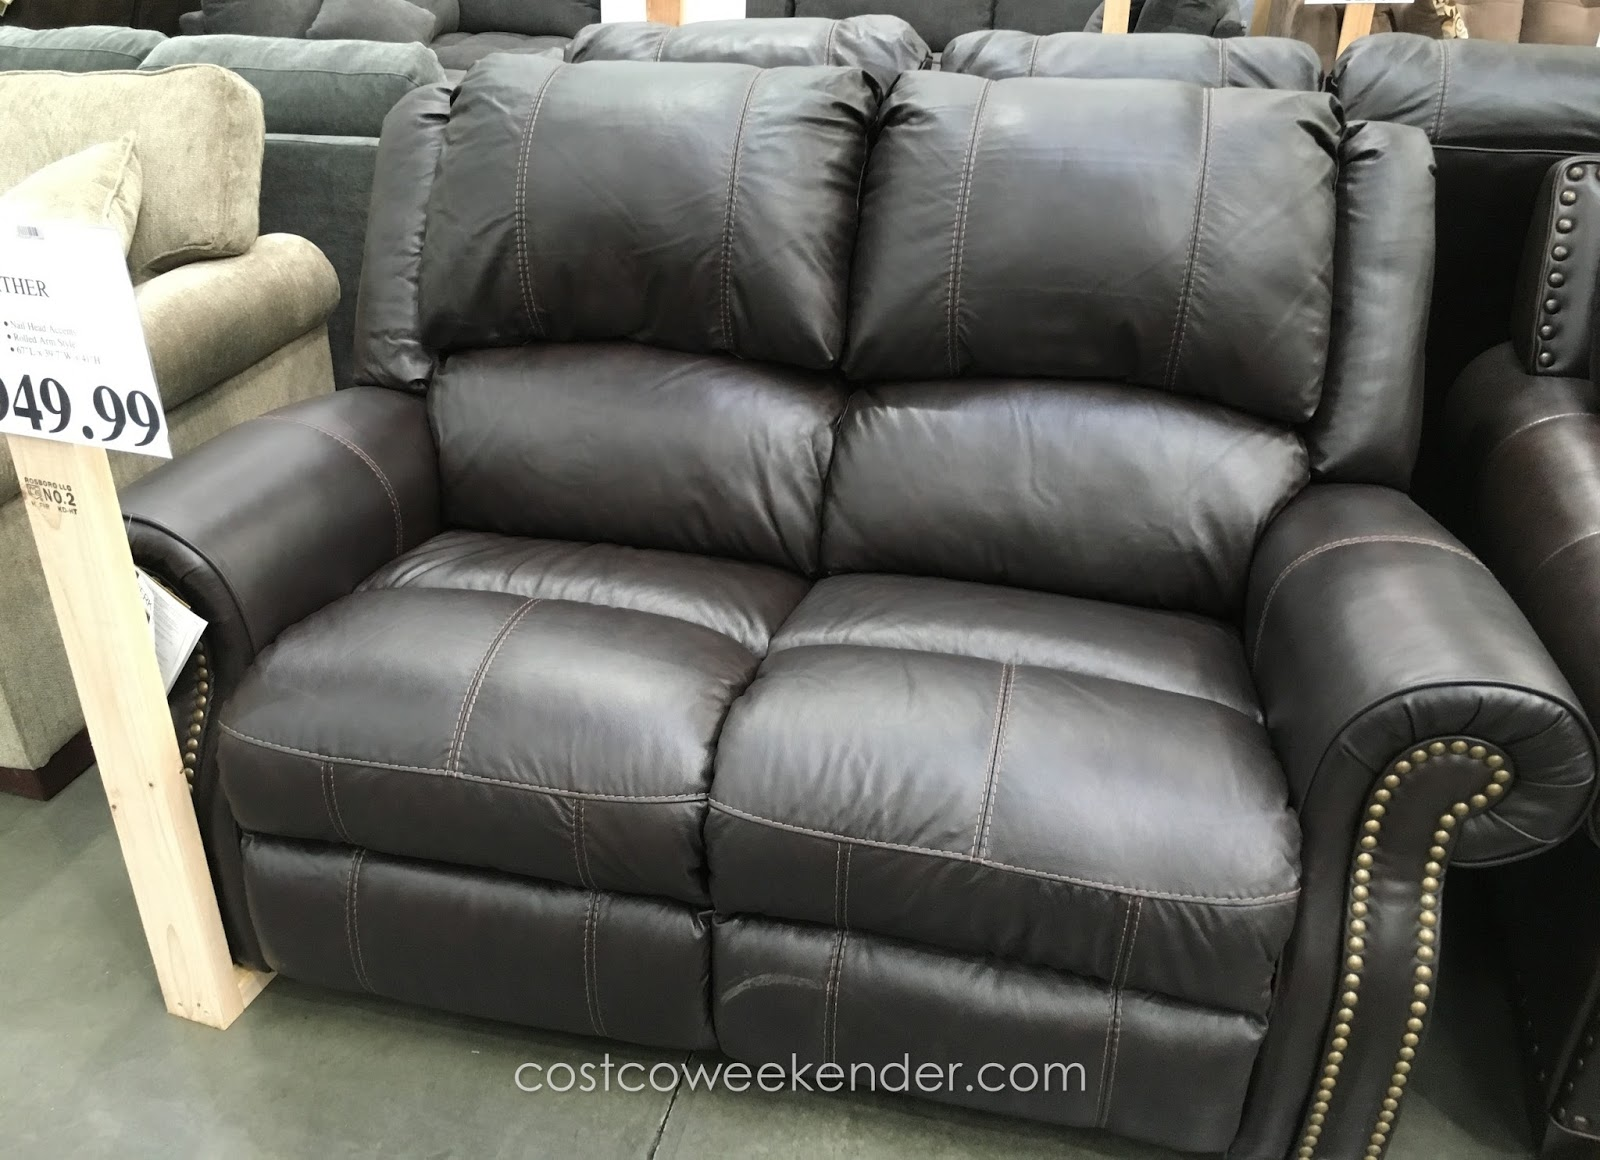 Berkline Reclining Loveseat Costco Sale Berkline Leather Reclining Sofa 79999 Frugal Hotspot